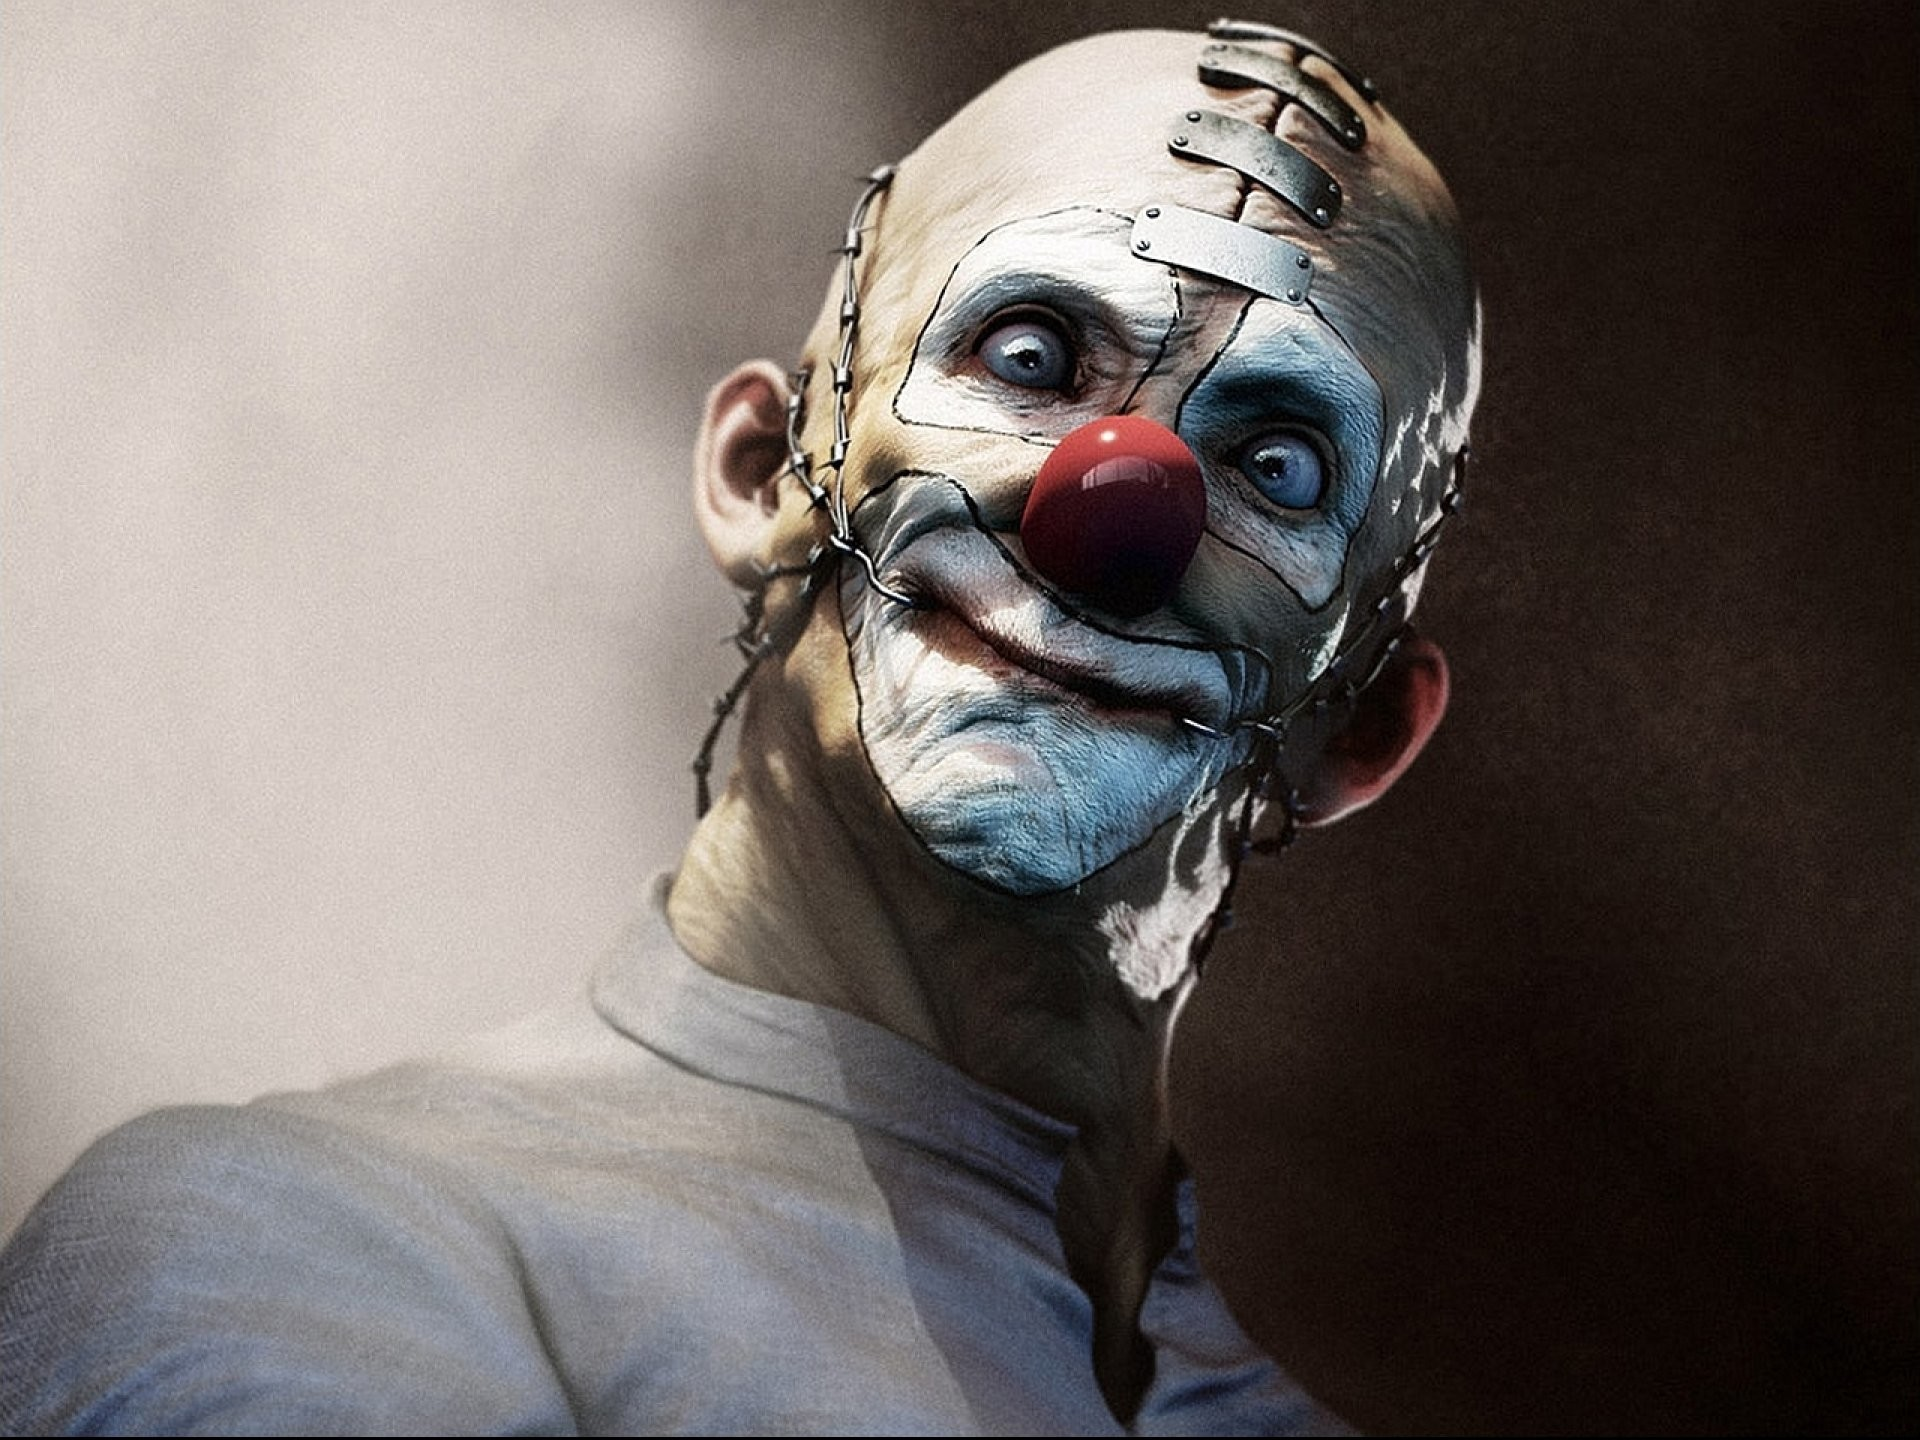 Res: 1920x1440, evil clown wallpaper #244277